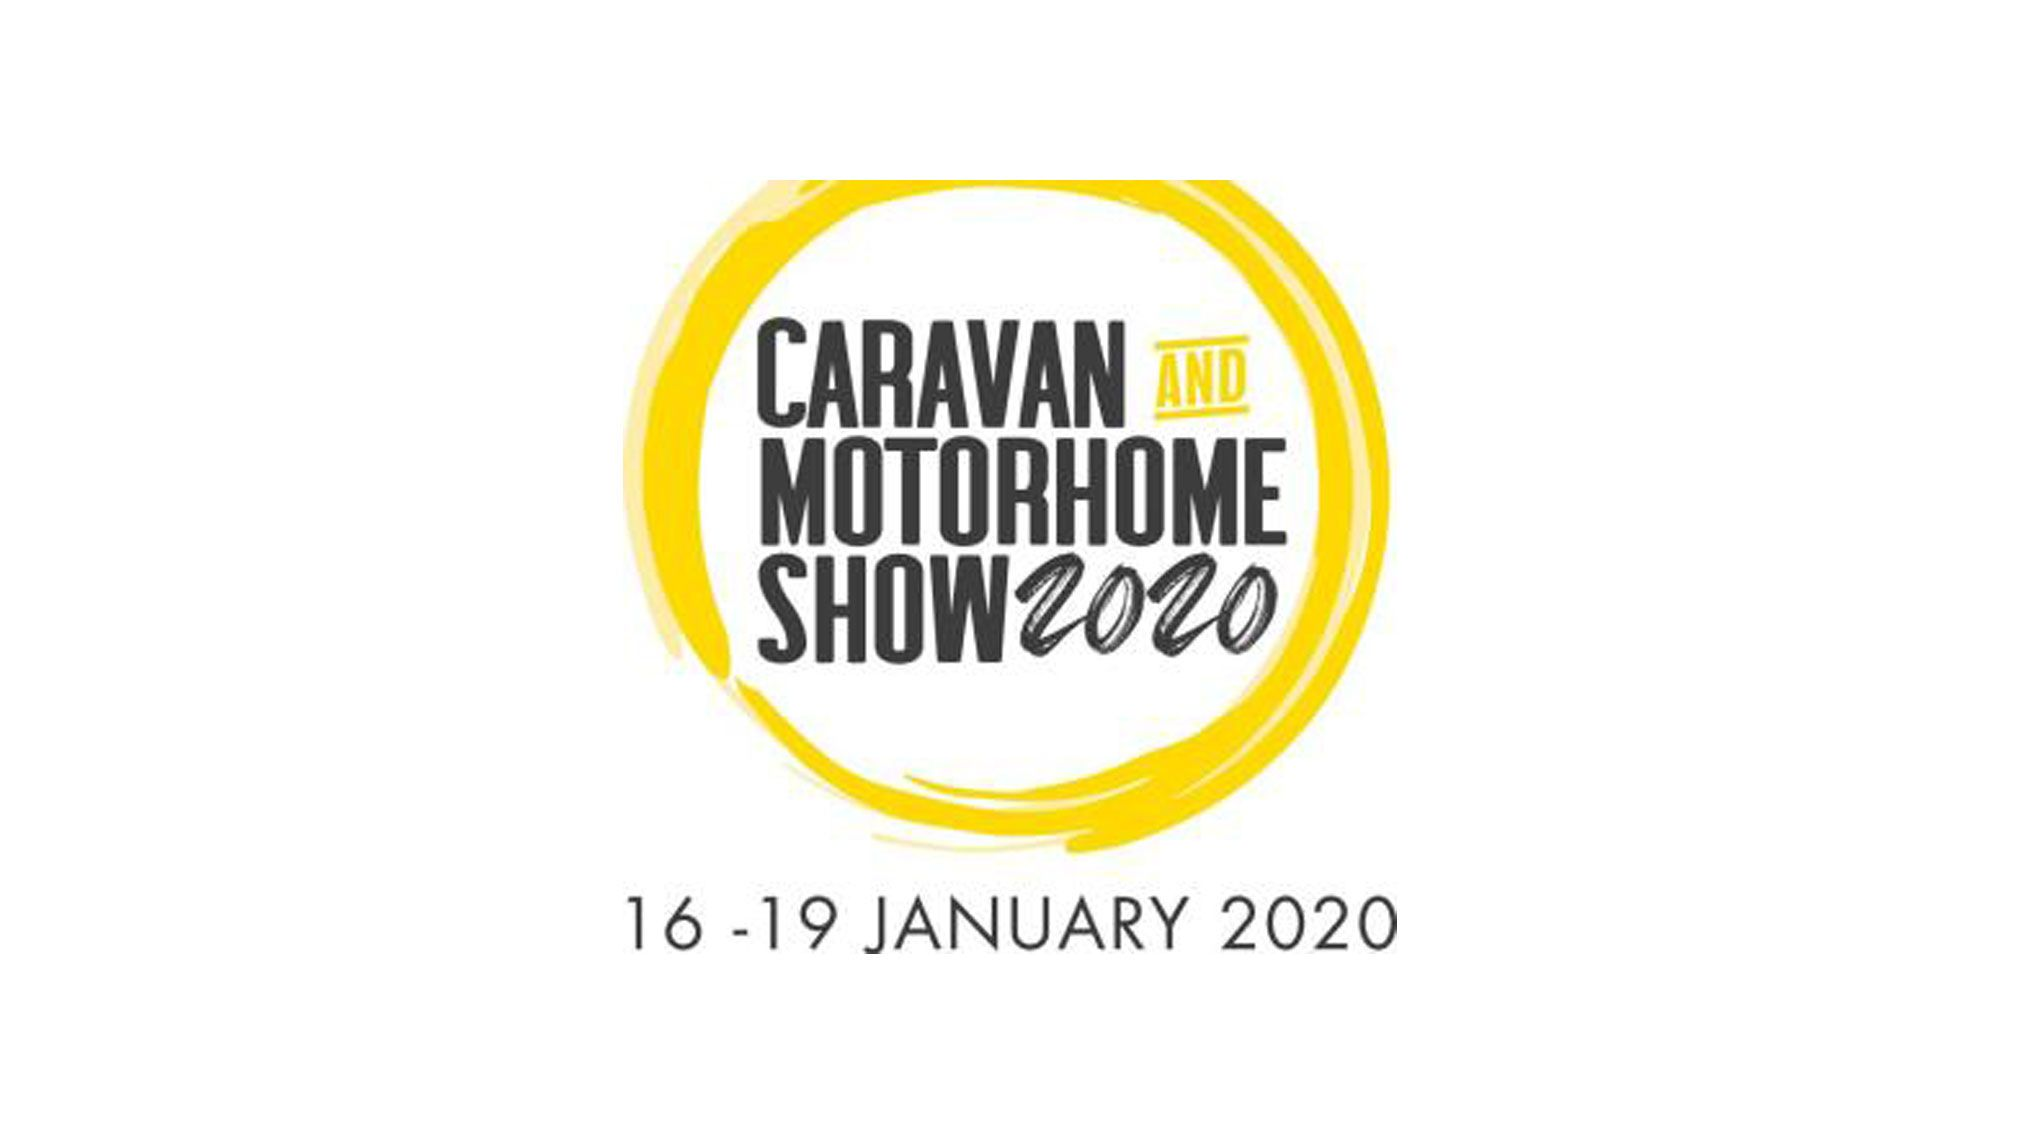 Manchester Caravan and Motrohome Show 2020